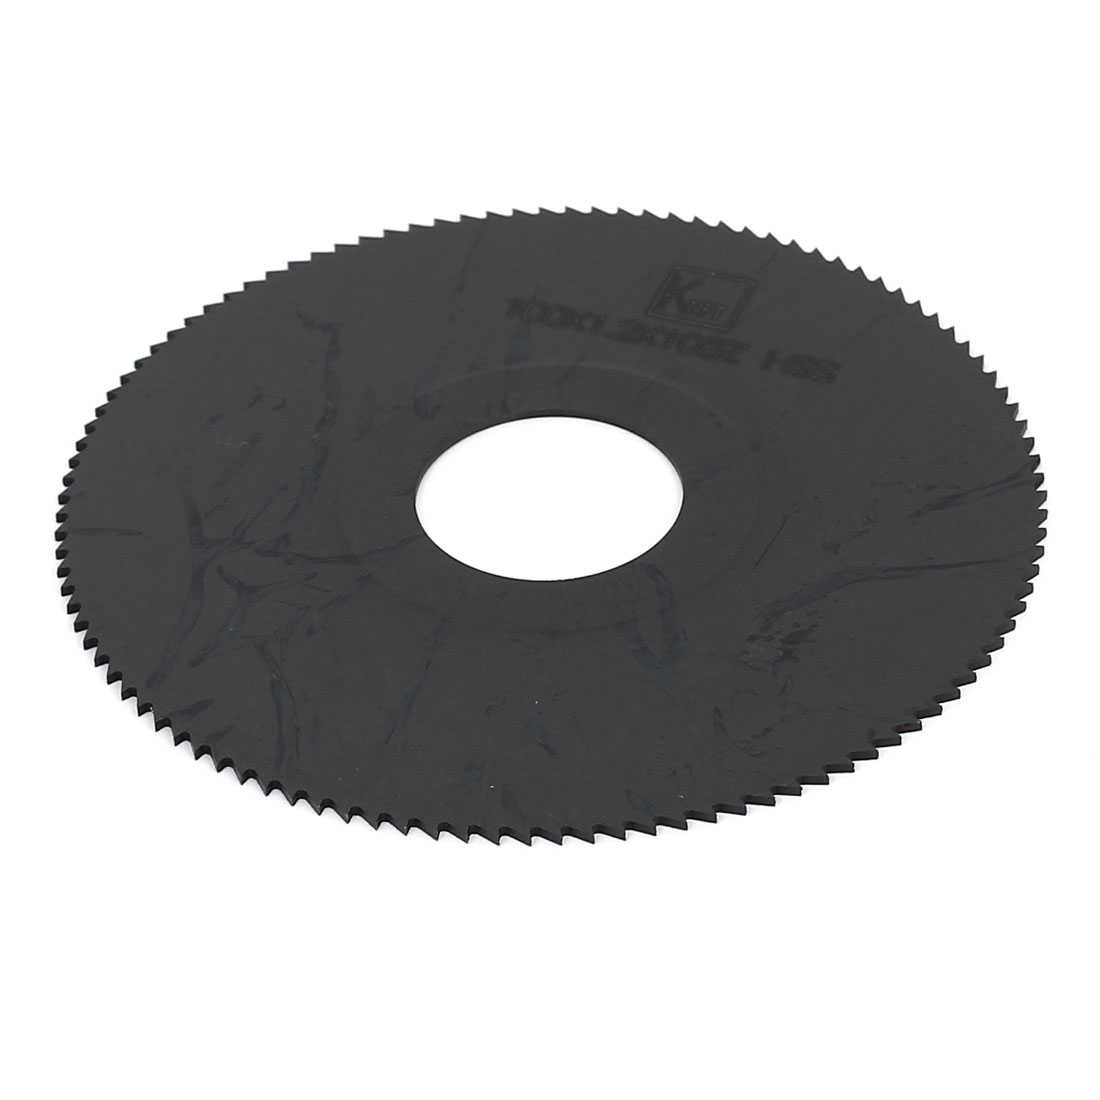 HSS 100mm x 1.2mm x 27mm 108T Teeth Round Cutting Disc Slitting Saw Blade Black